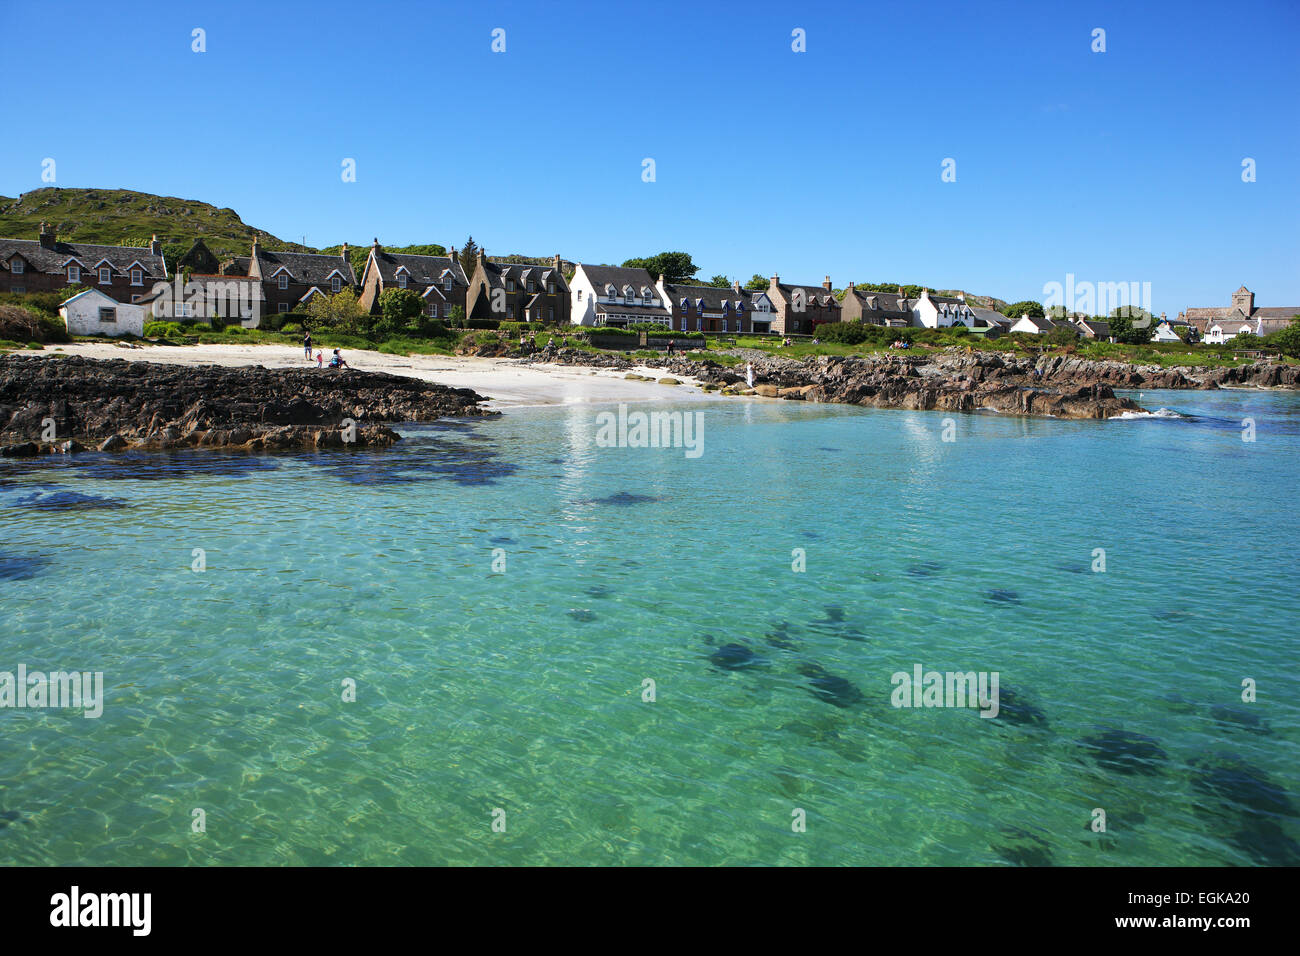 The sandy beach and turquoise seas at Baile Mór, the only village on the Isle of Iona - Stock Image